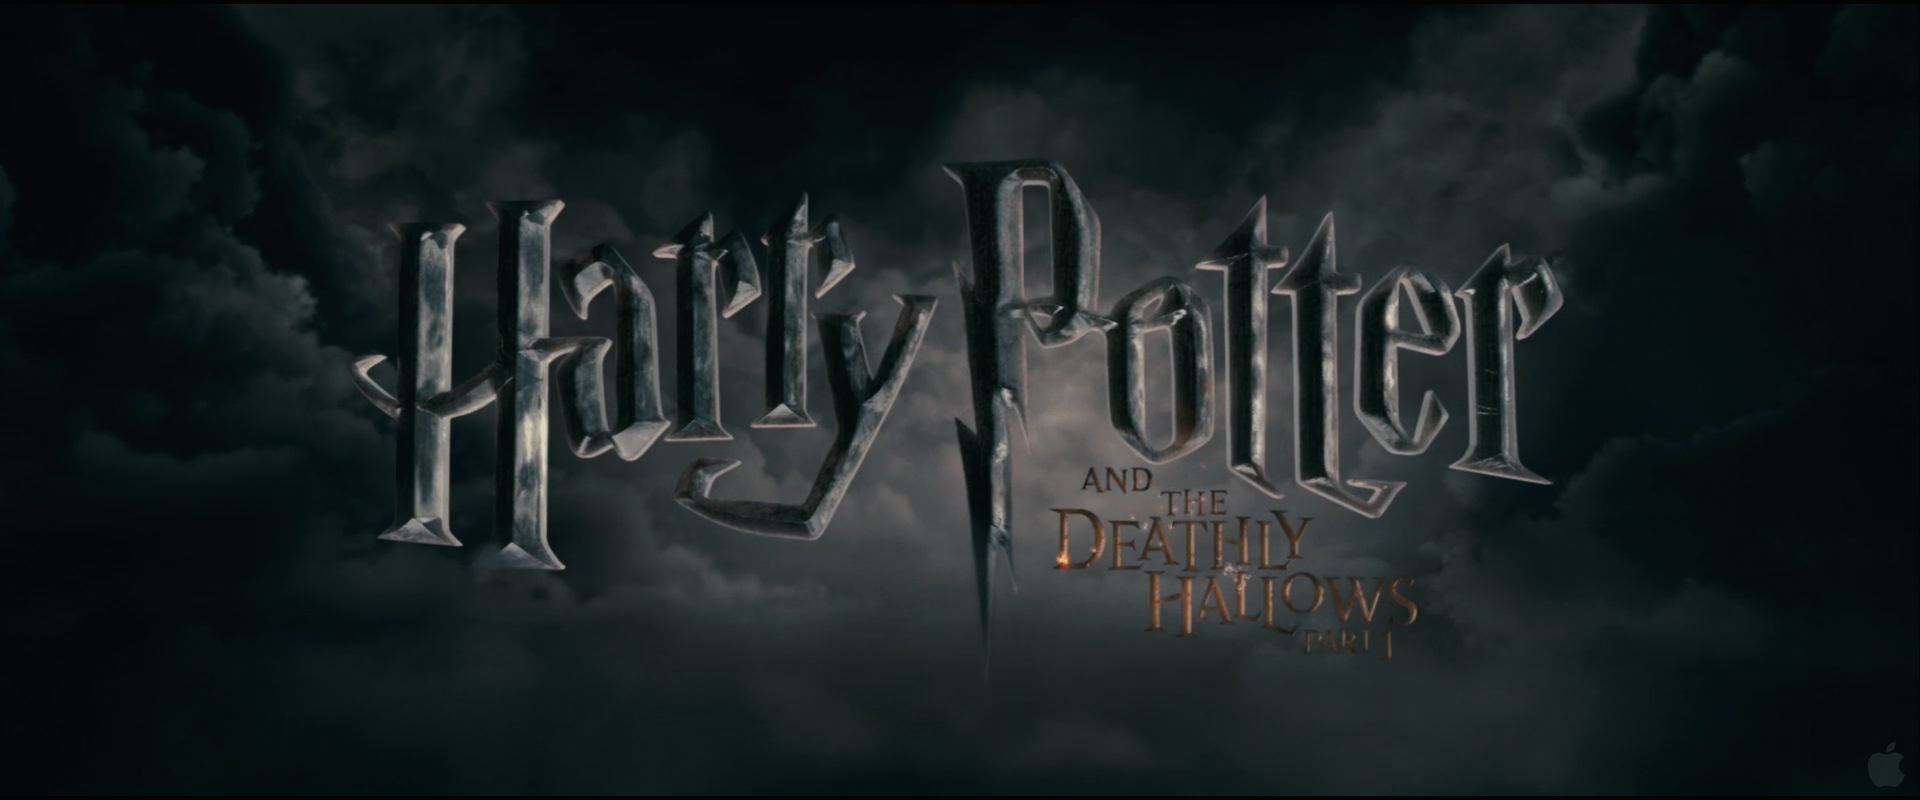 Harry Potter and the Deathly Hallows Movie Logo Desktop Wallpapers